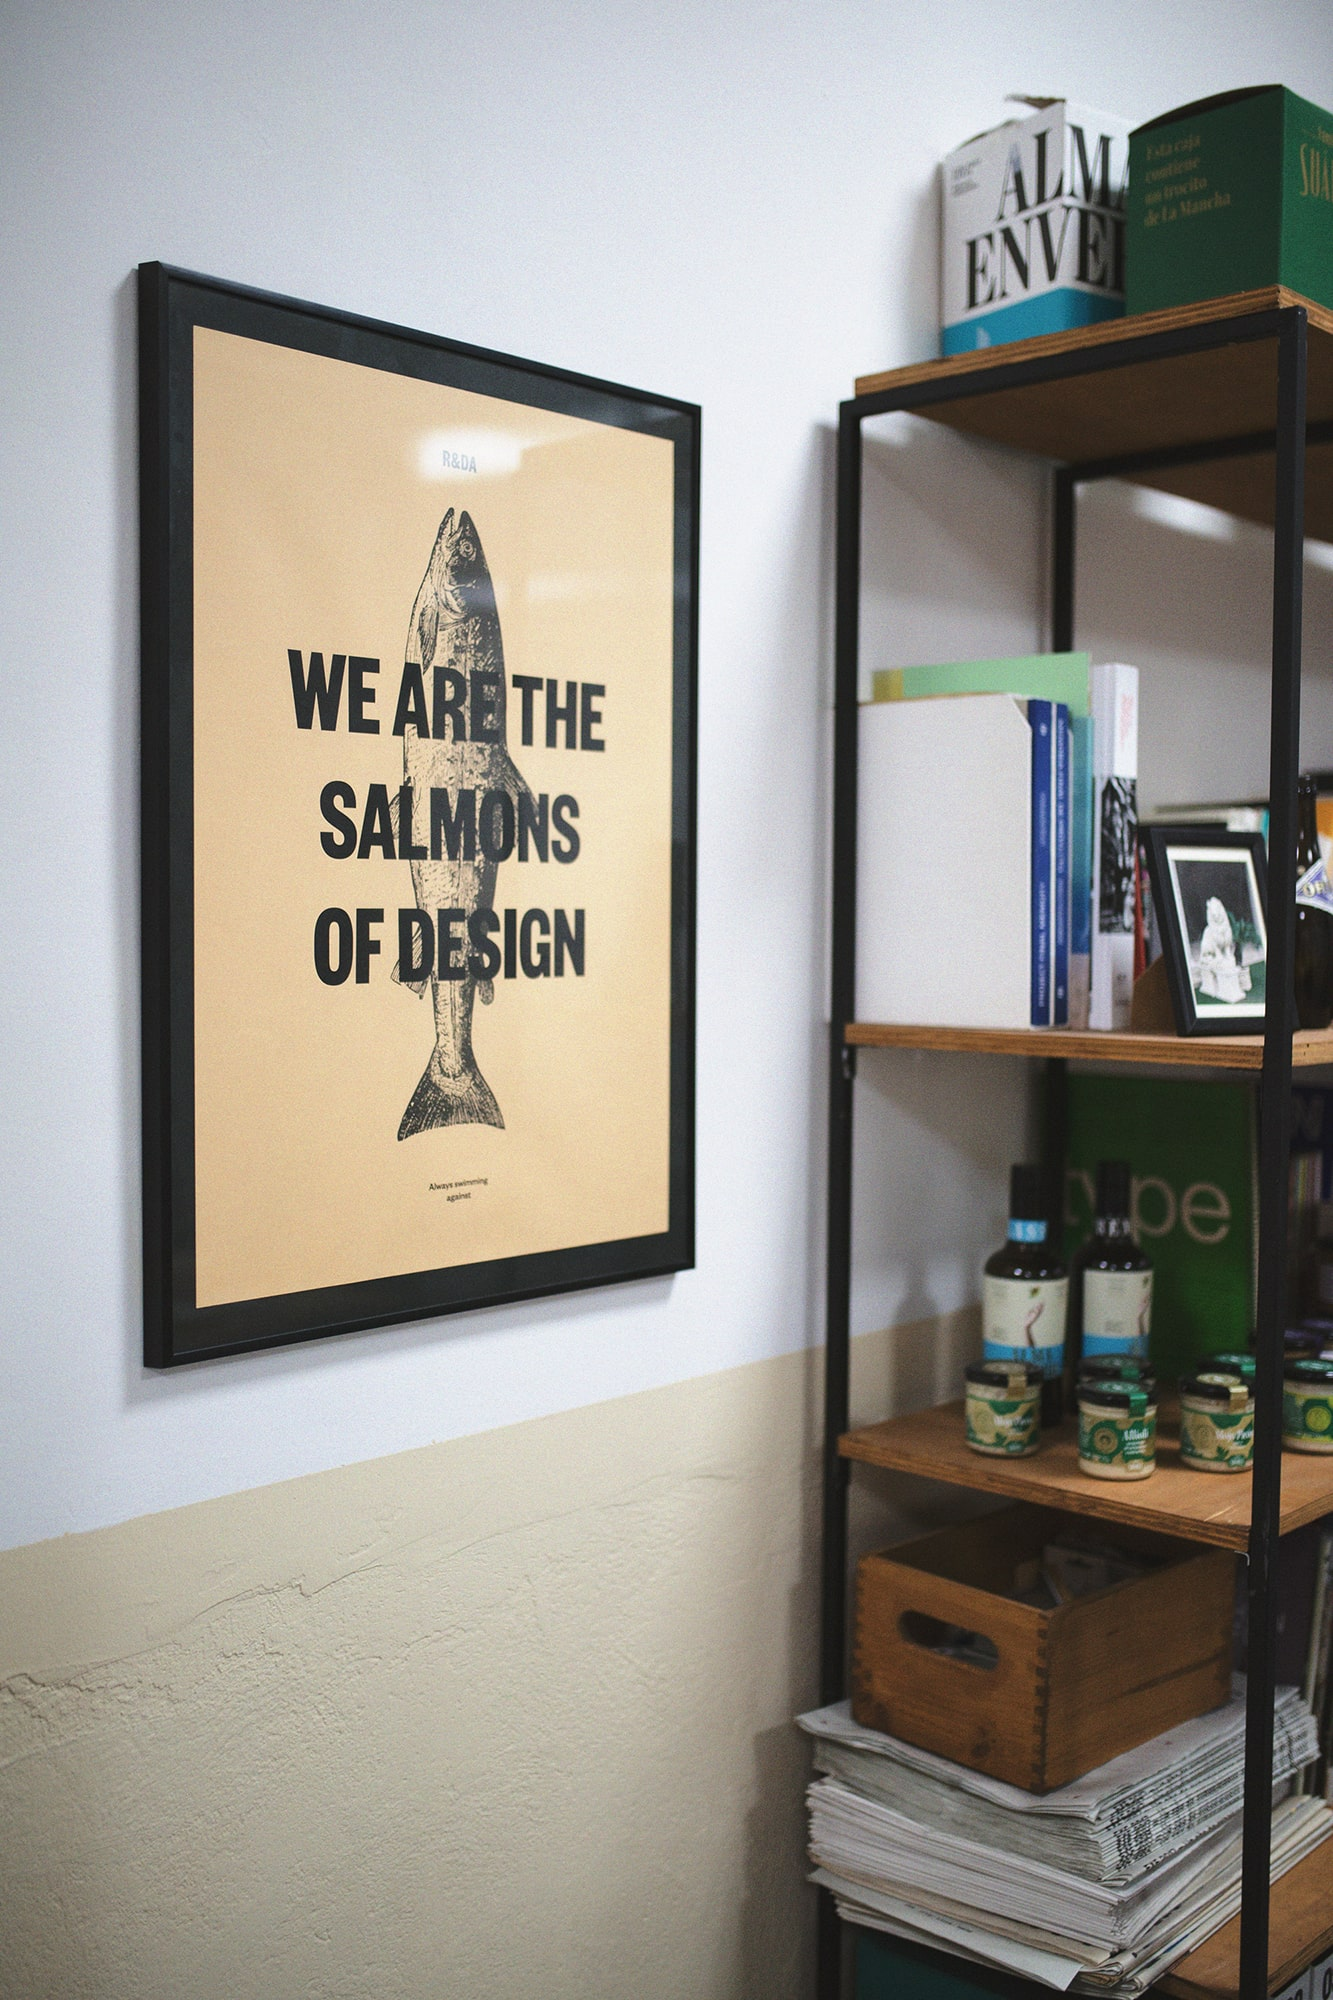 we are the salmons of design